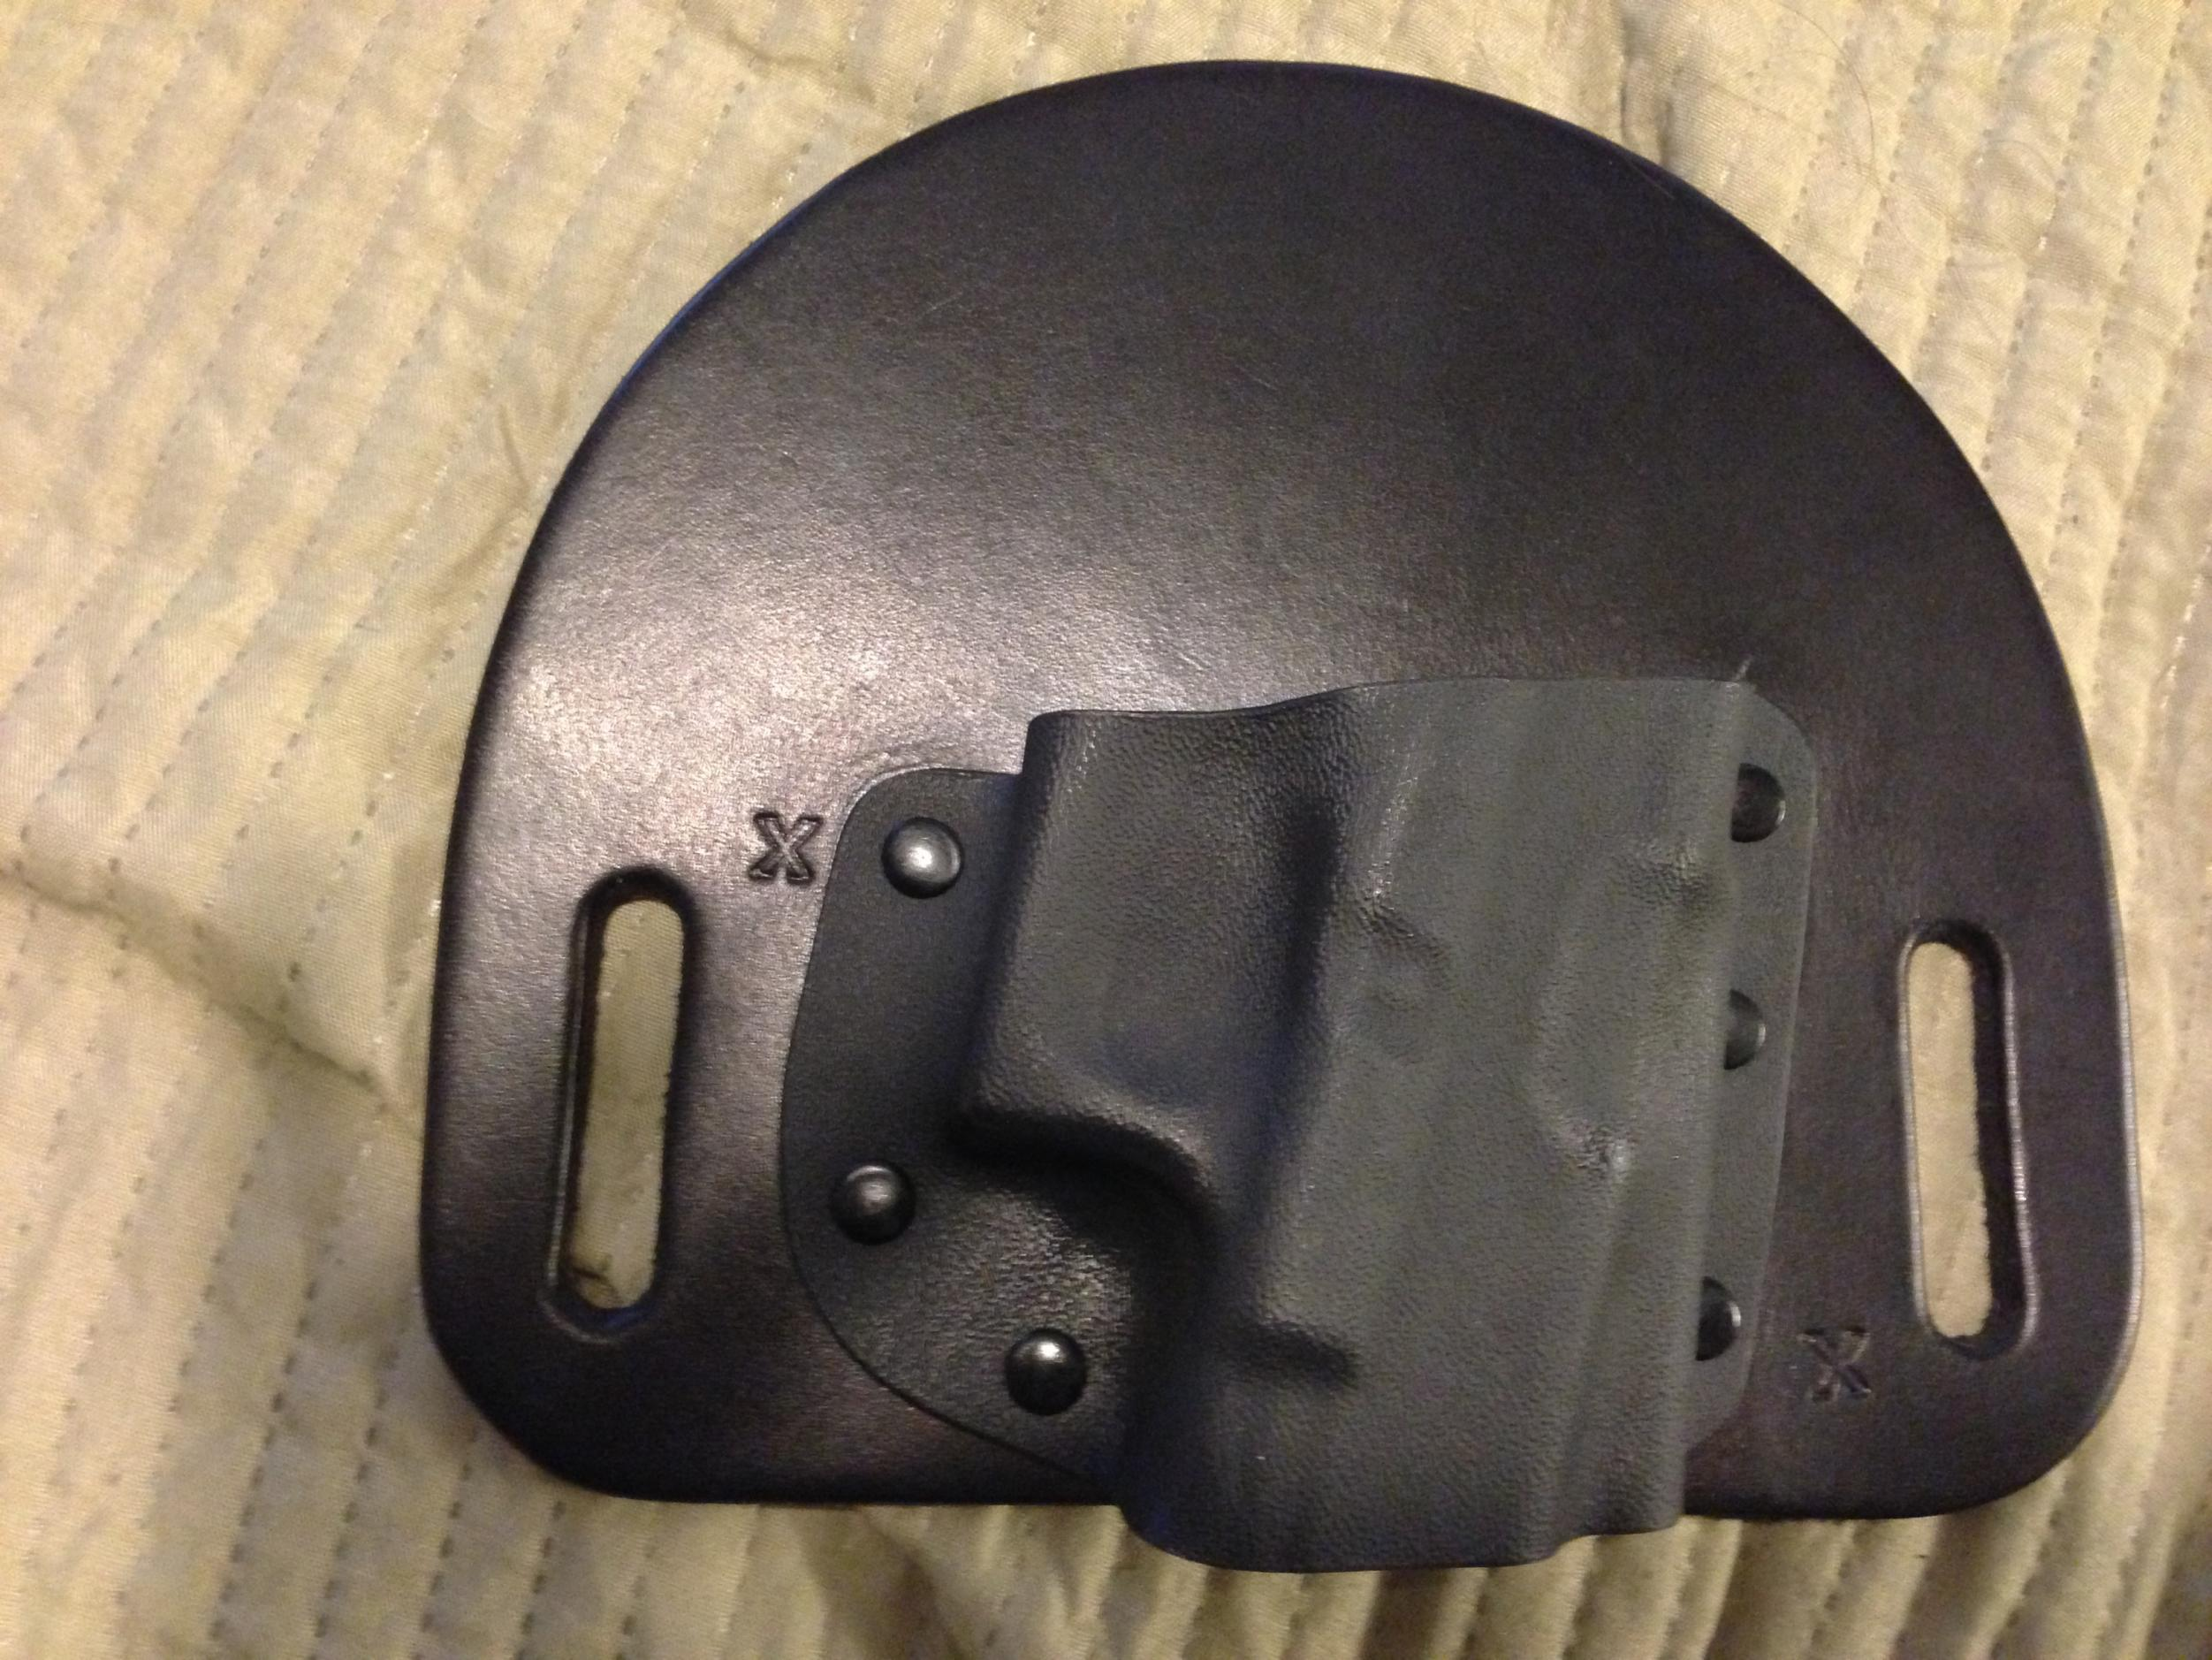 Secondhand holsters that deliver-image.jpg